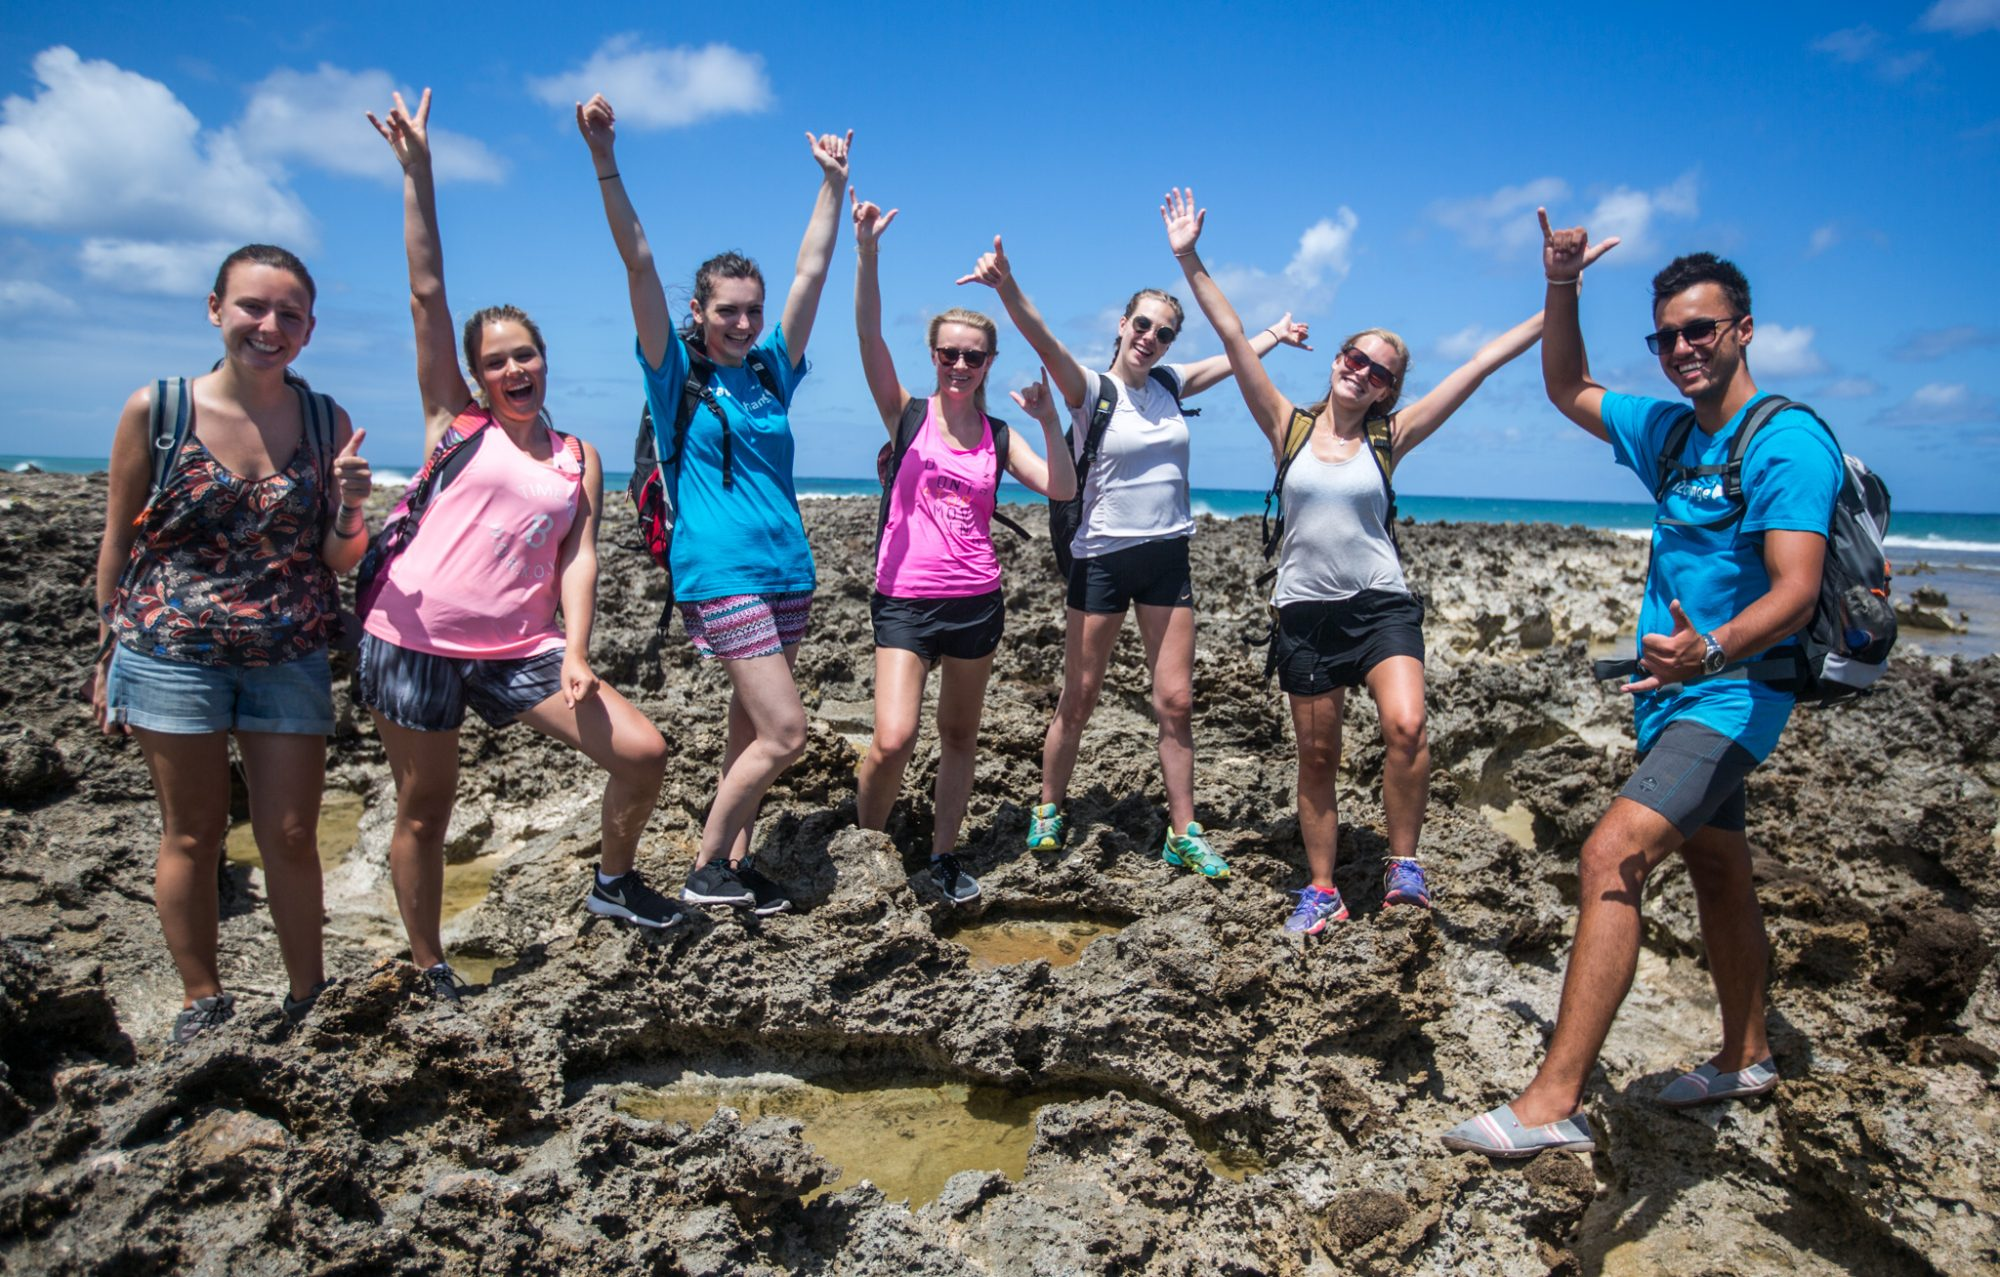 Volunteer in Hawaii - Fun and Impact